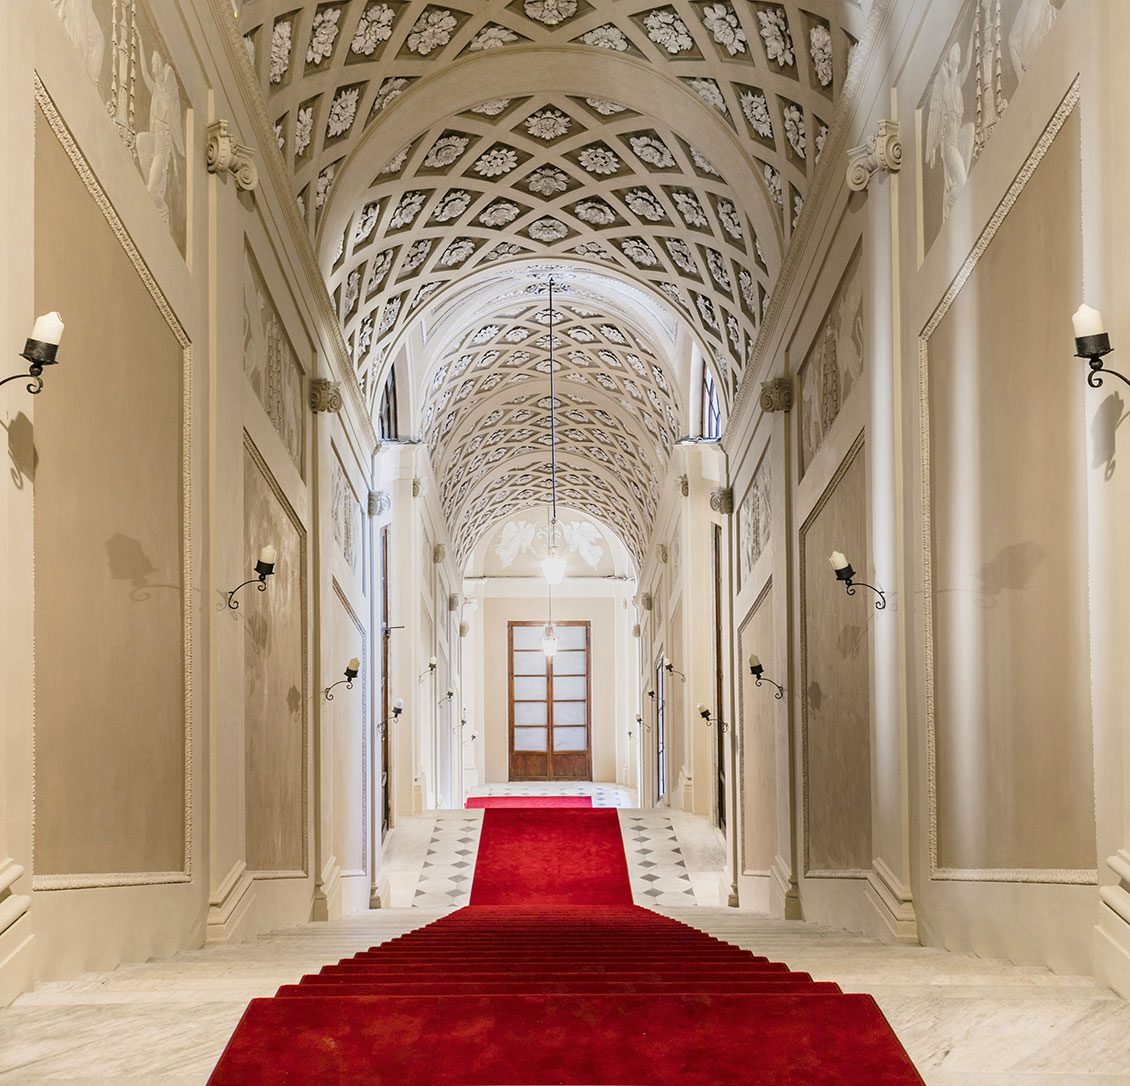 The last two flights of the Royal Staircase with a celebratory red carpet